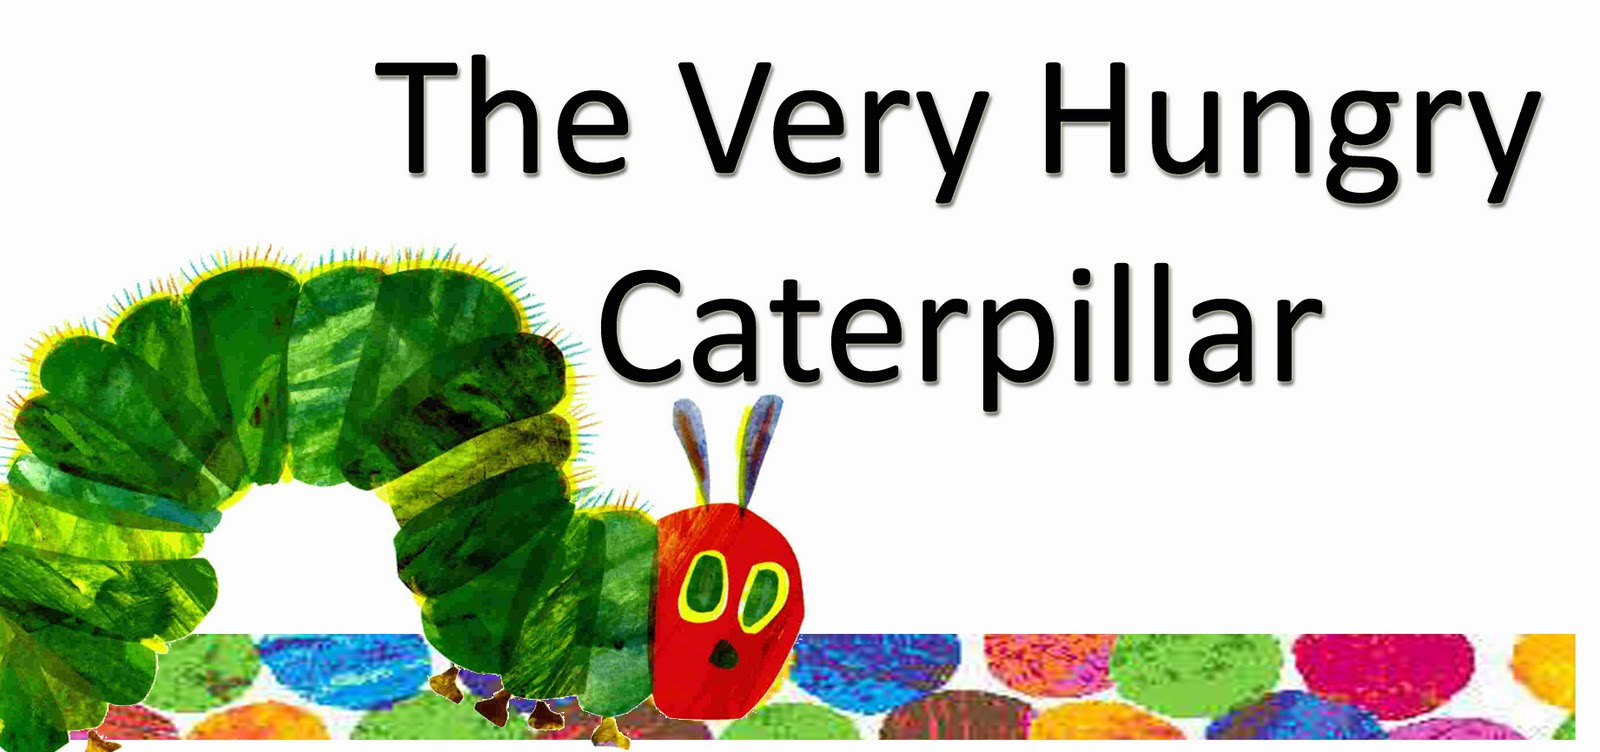 penny 39 s parties the very hungry caterpillar. Black Bedroom Furniture Sets. Home Design Ideas